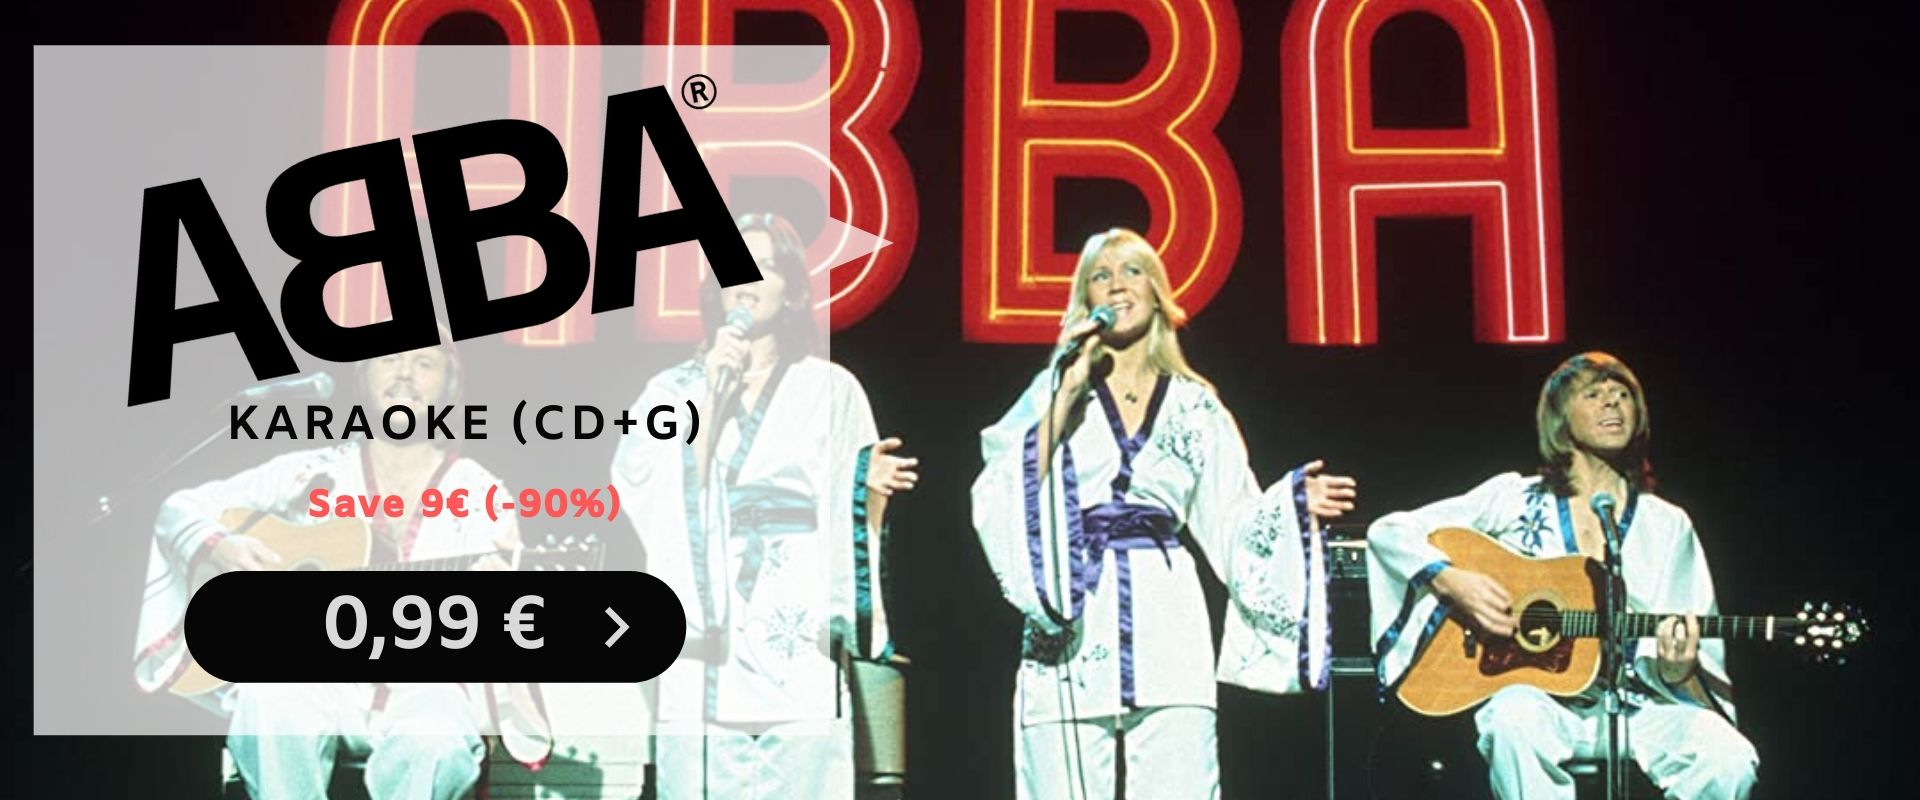 ABBA Karaoke (CD+G) - only 0,99 € (90% off)